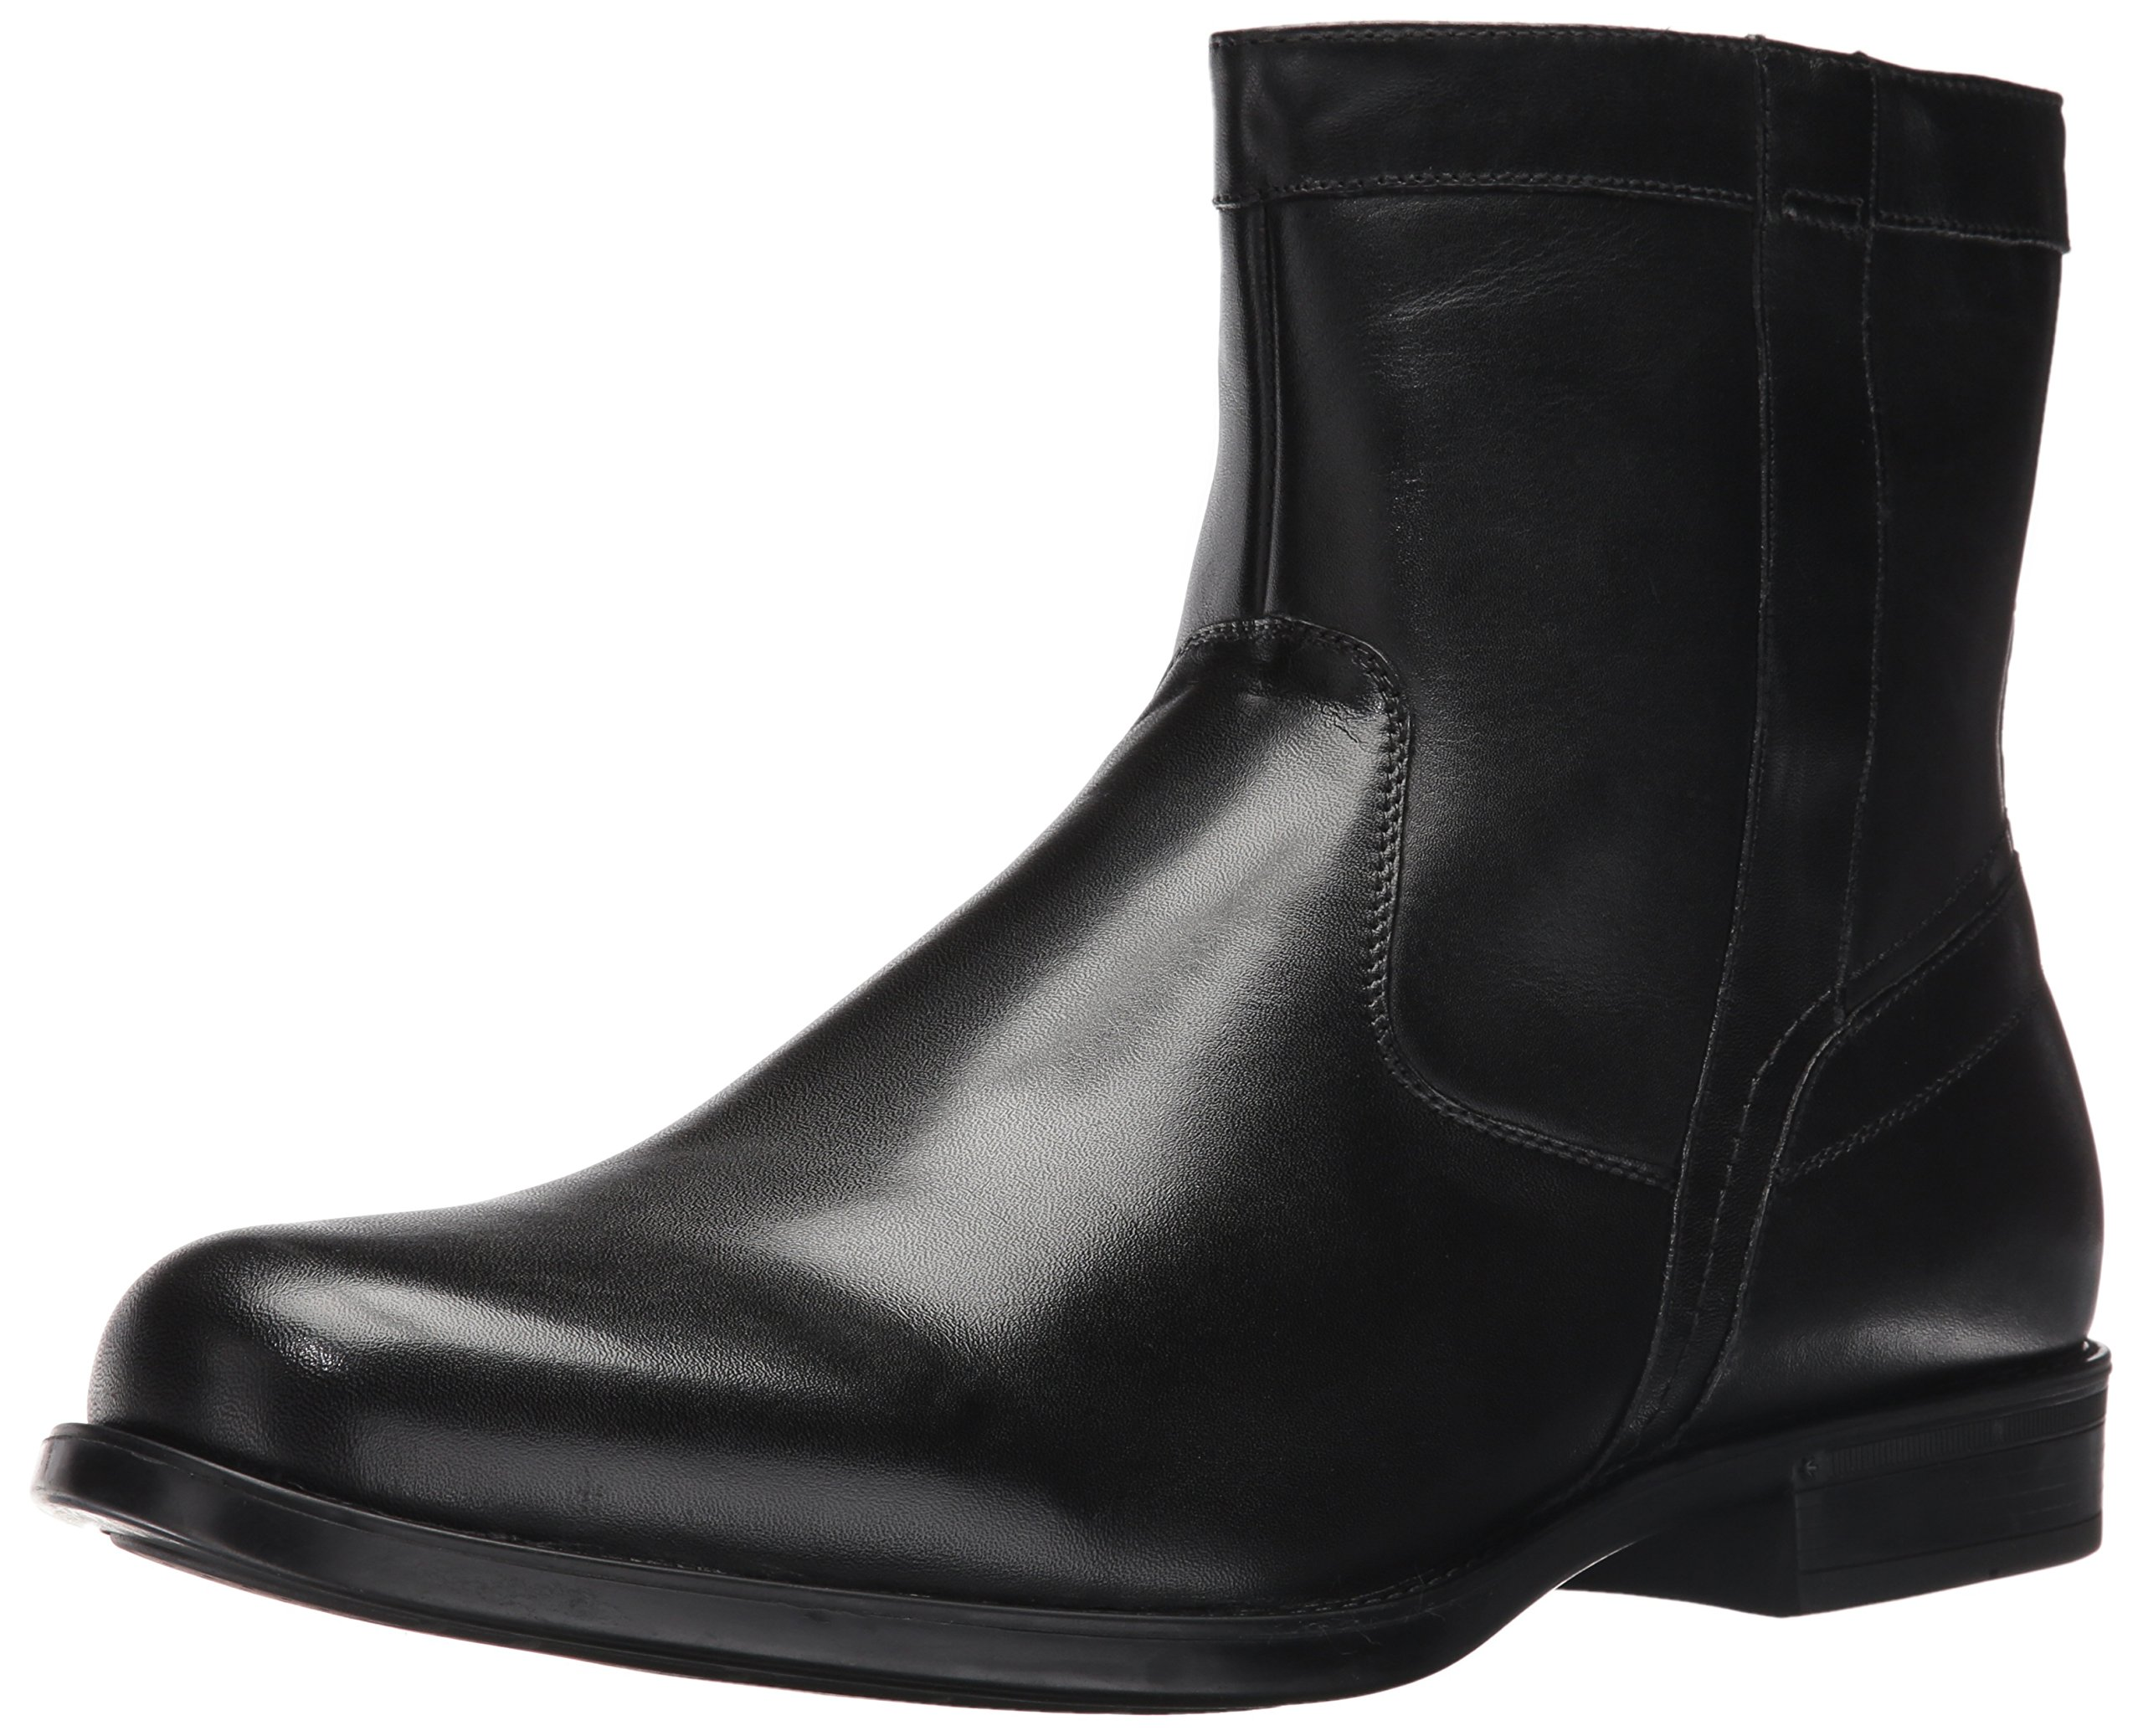 Florsheim Men's Medfield Plain Toe Zip Boot Fashion, black, 8.5 Wide by Florsheim